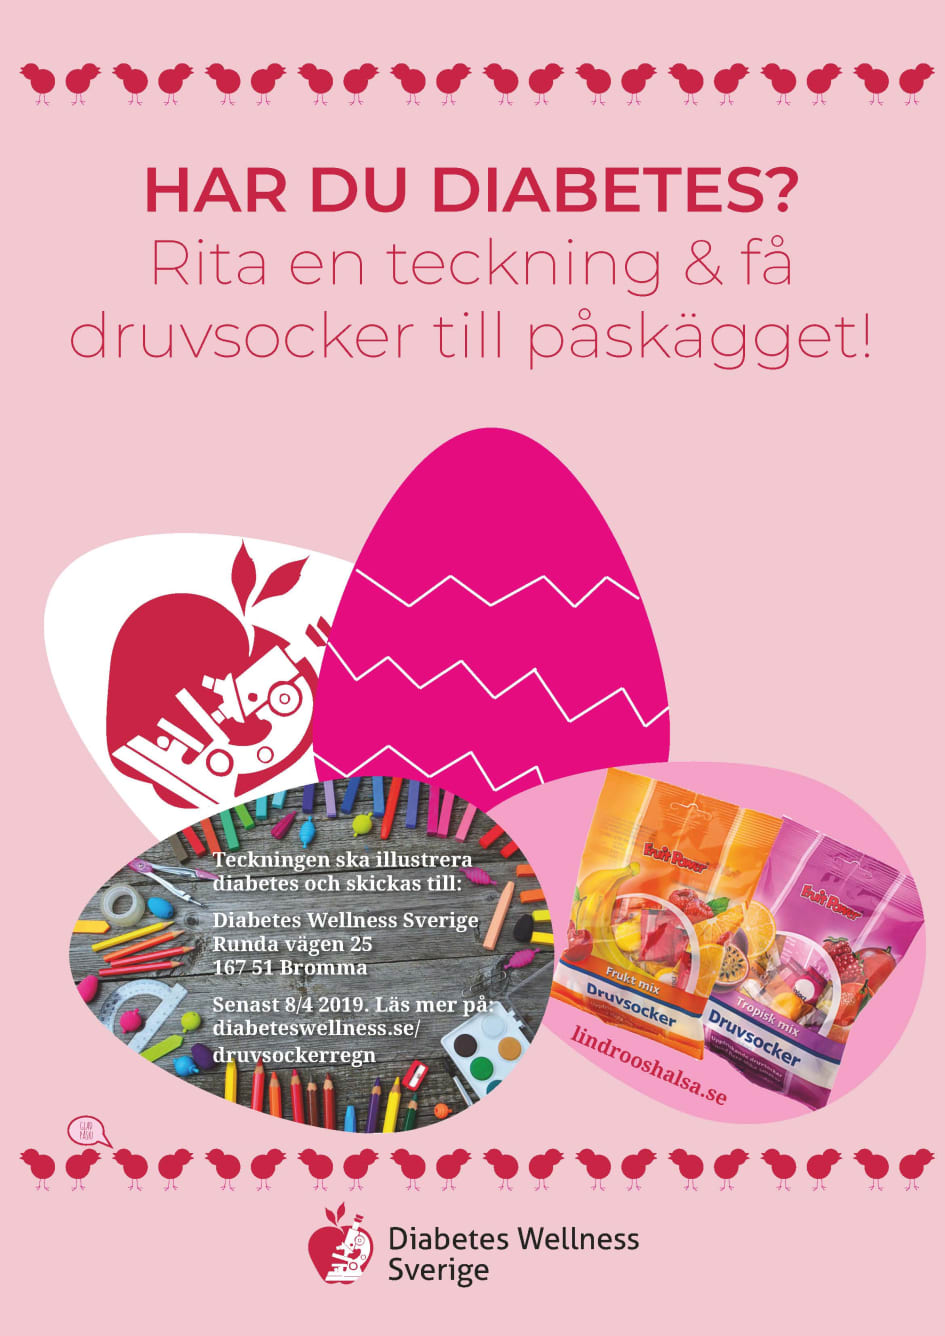 Druvsockerregn Diabetes Wellness Sverige